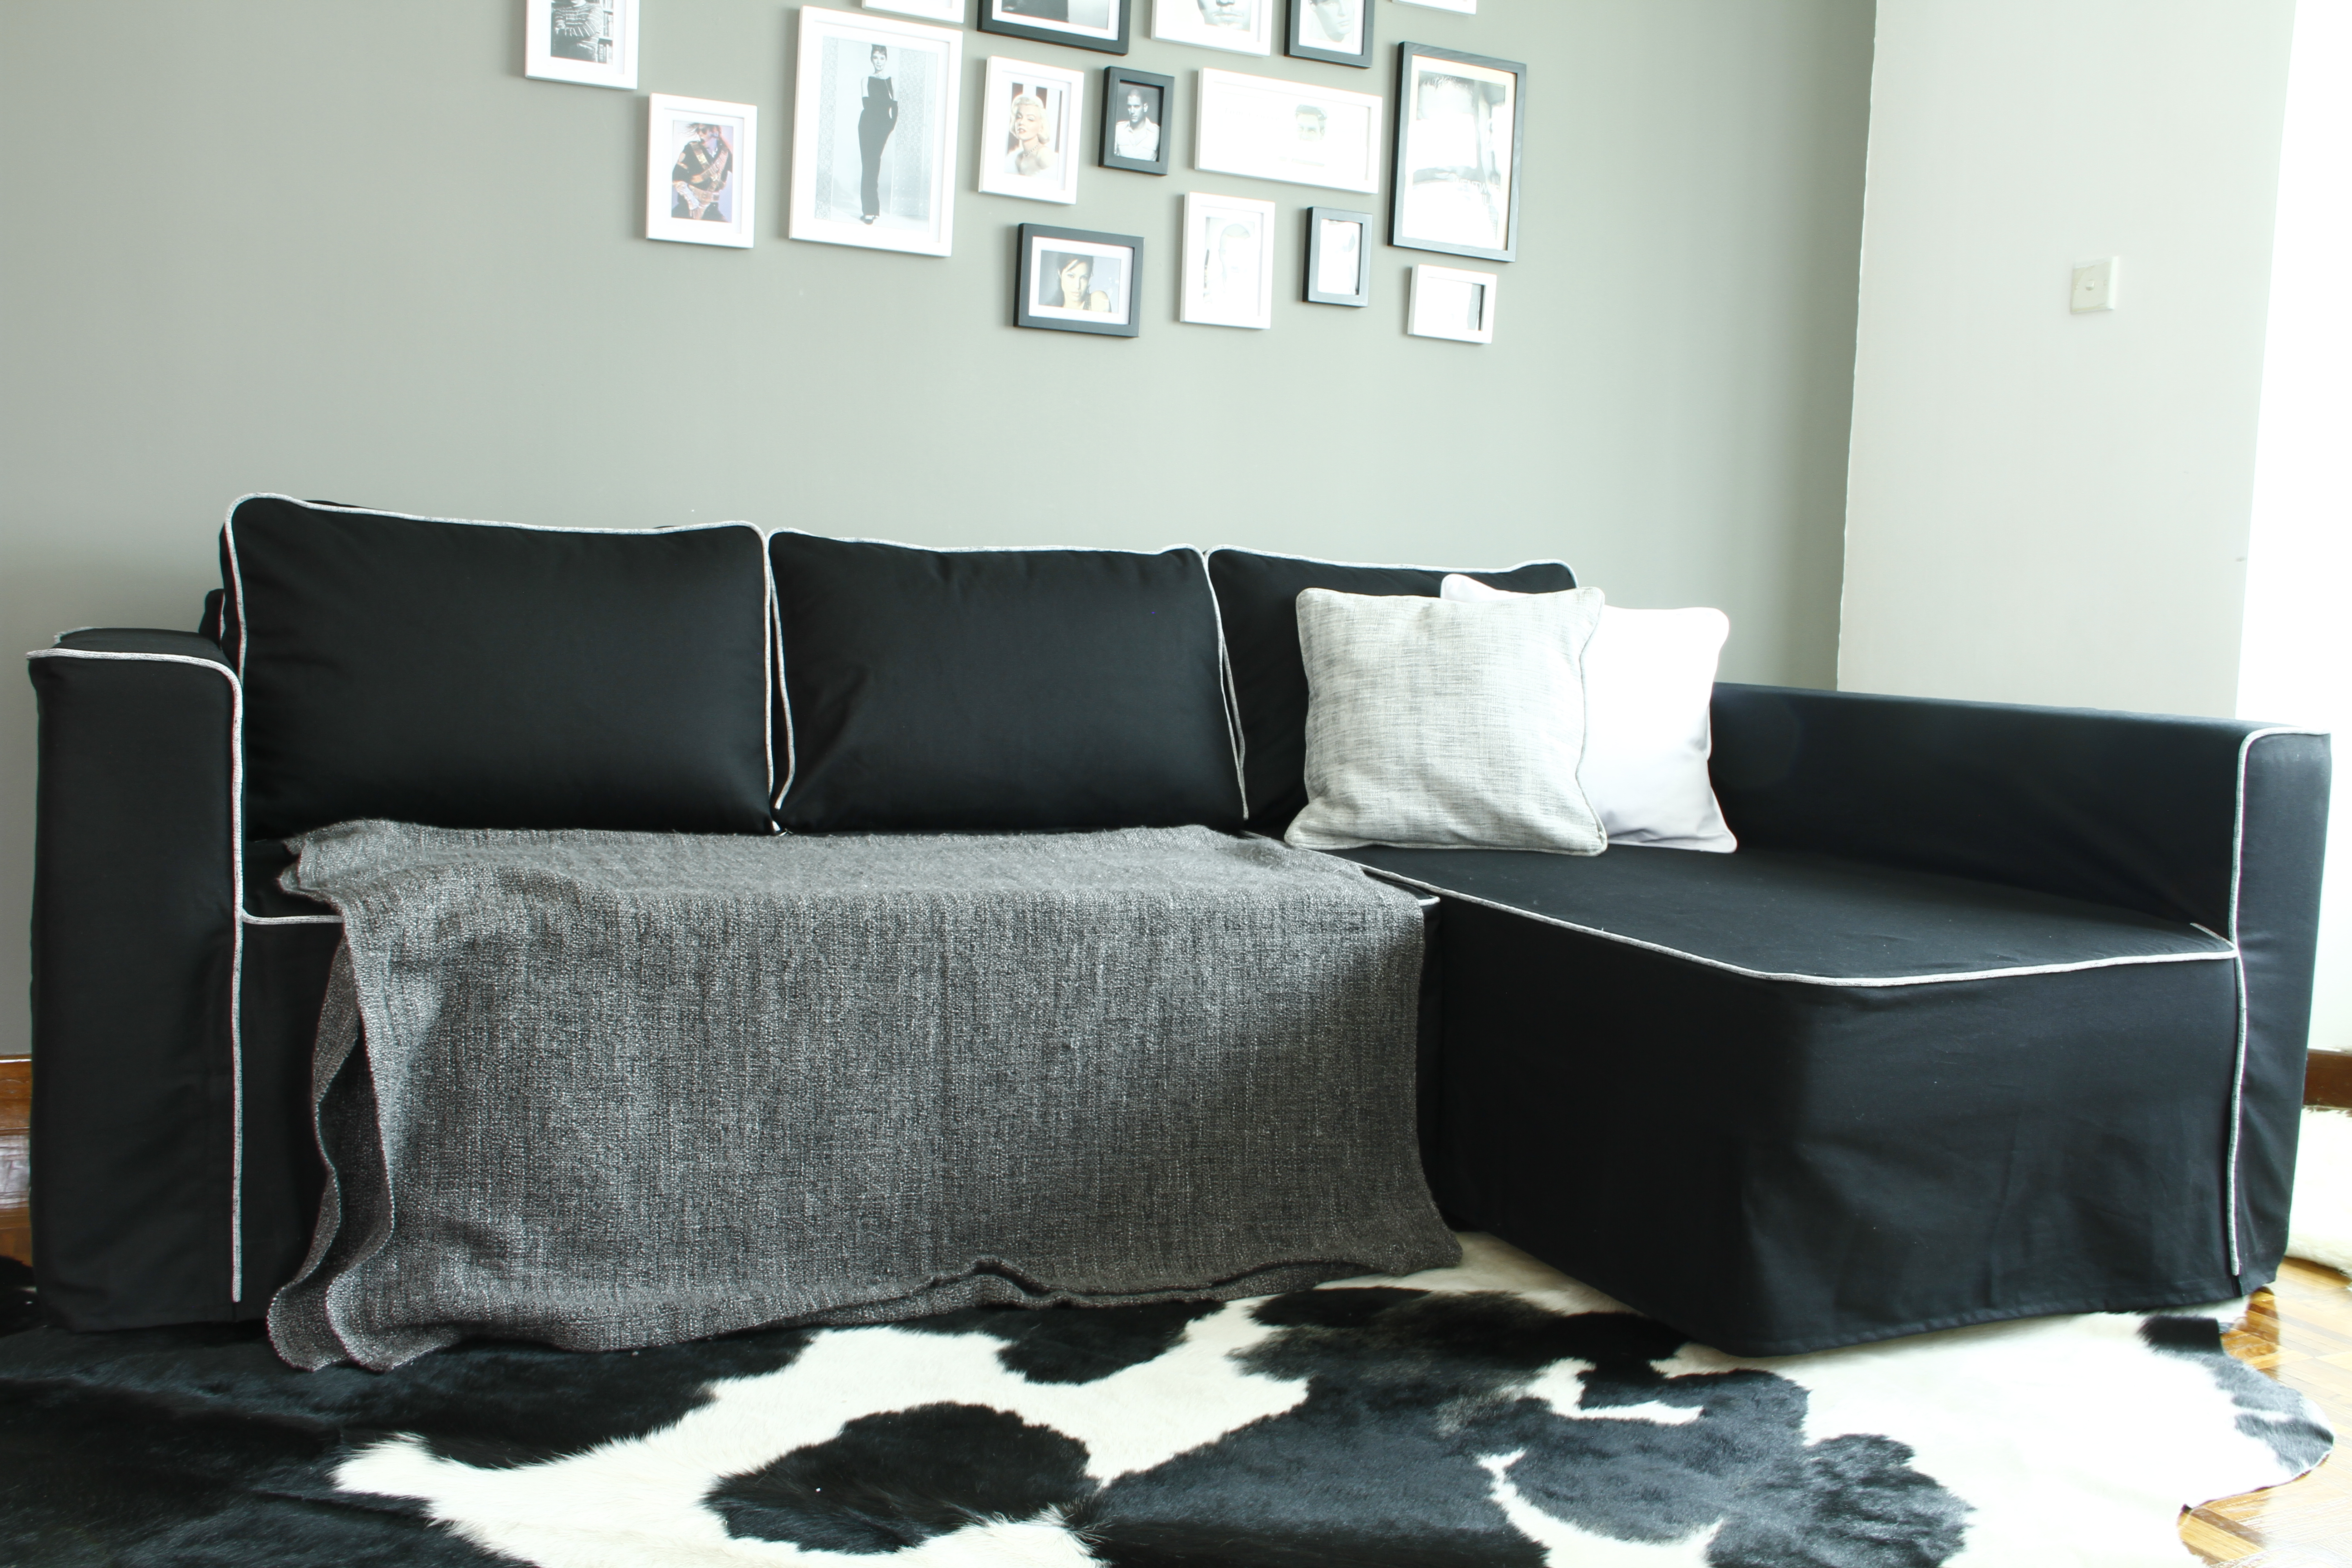 IKEA Manstad sofa bed